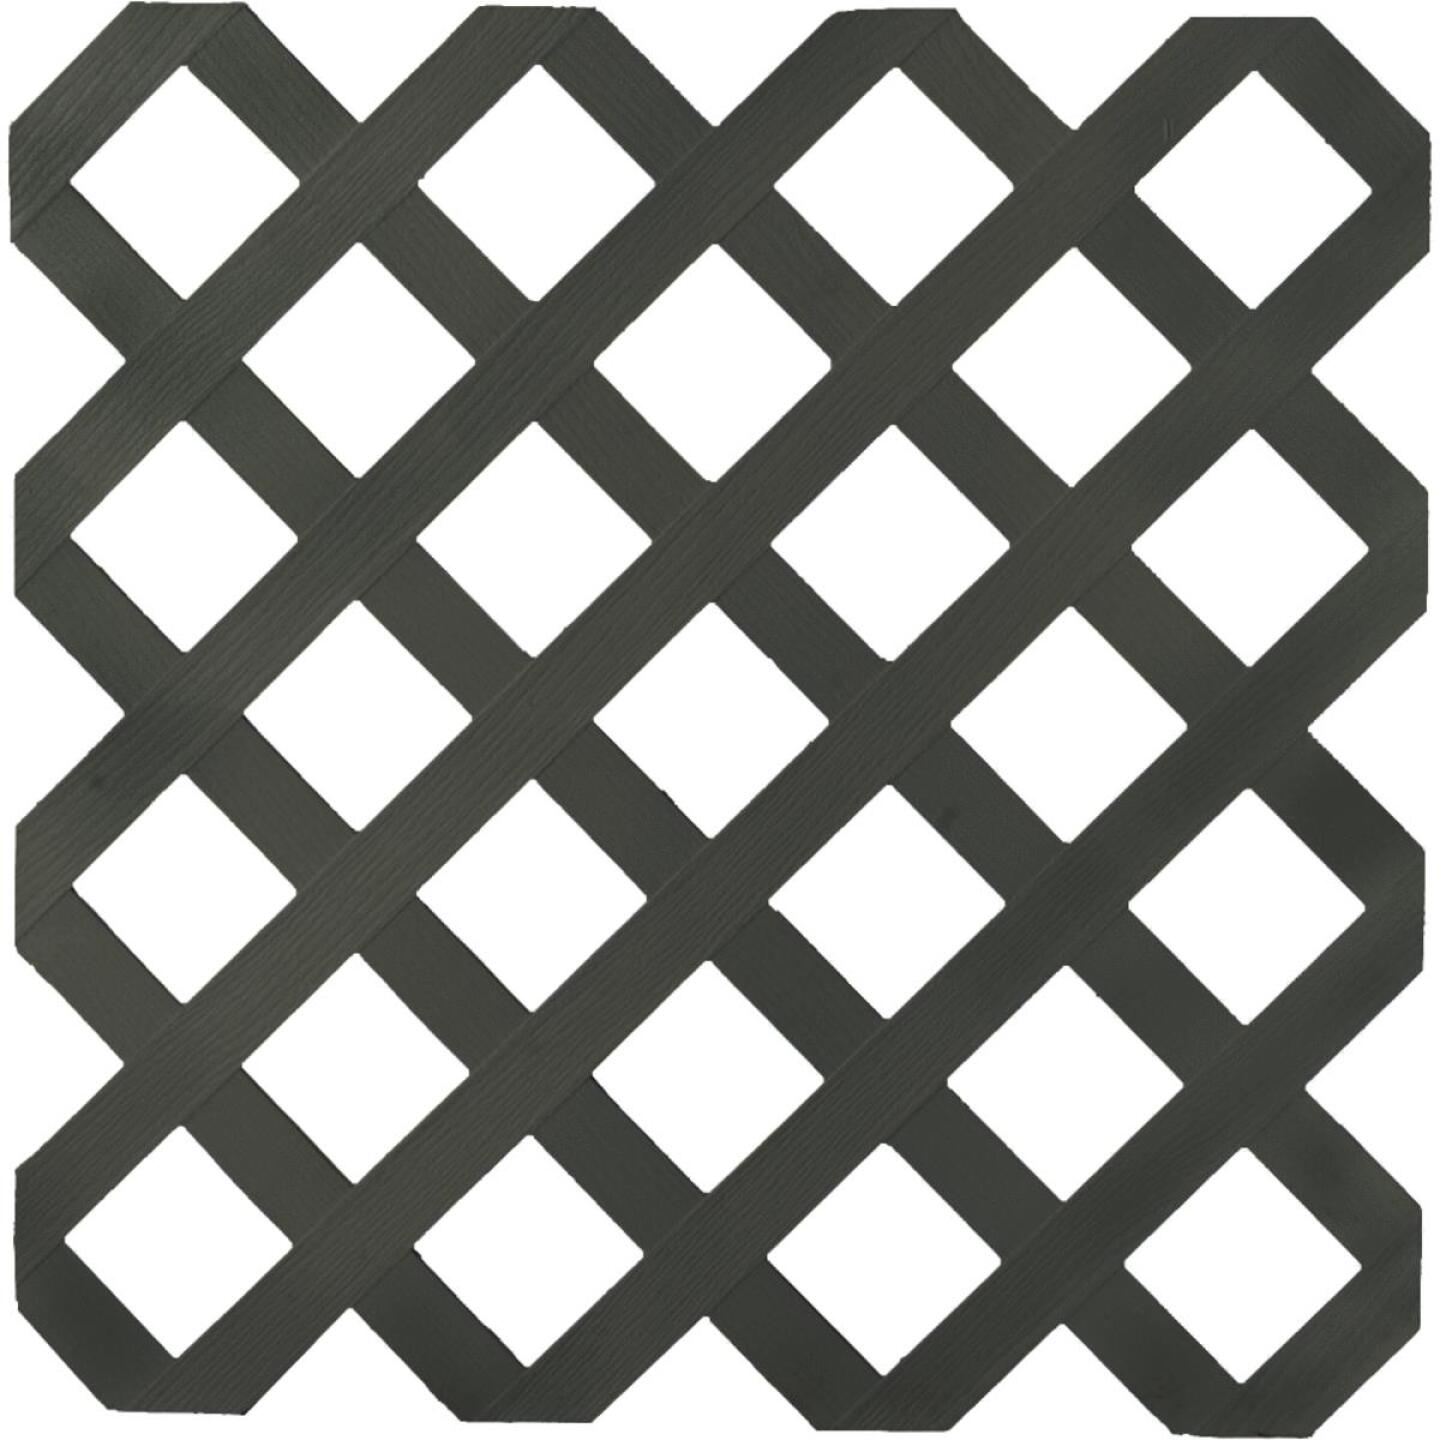 Dimensions 4 Ft. W x 8 Ft. L x 1/8 In. Thick Black Vinyl Lattice Panel Image 1